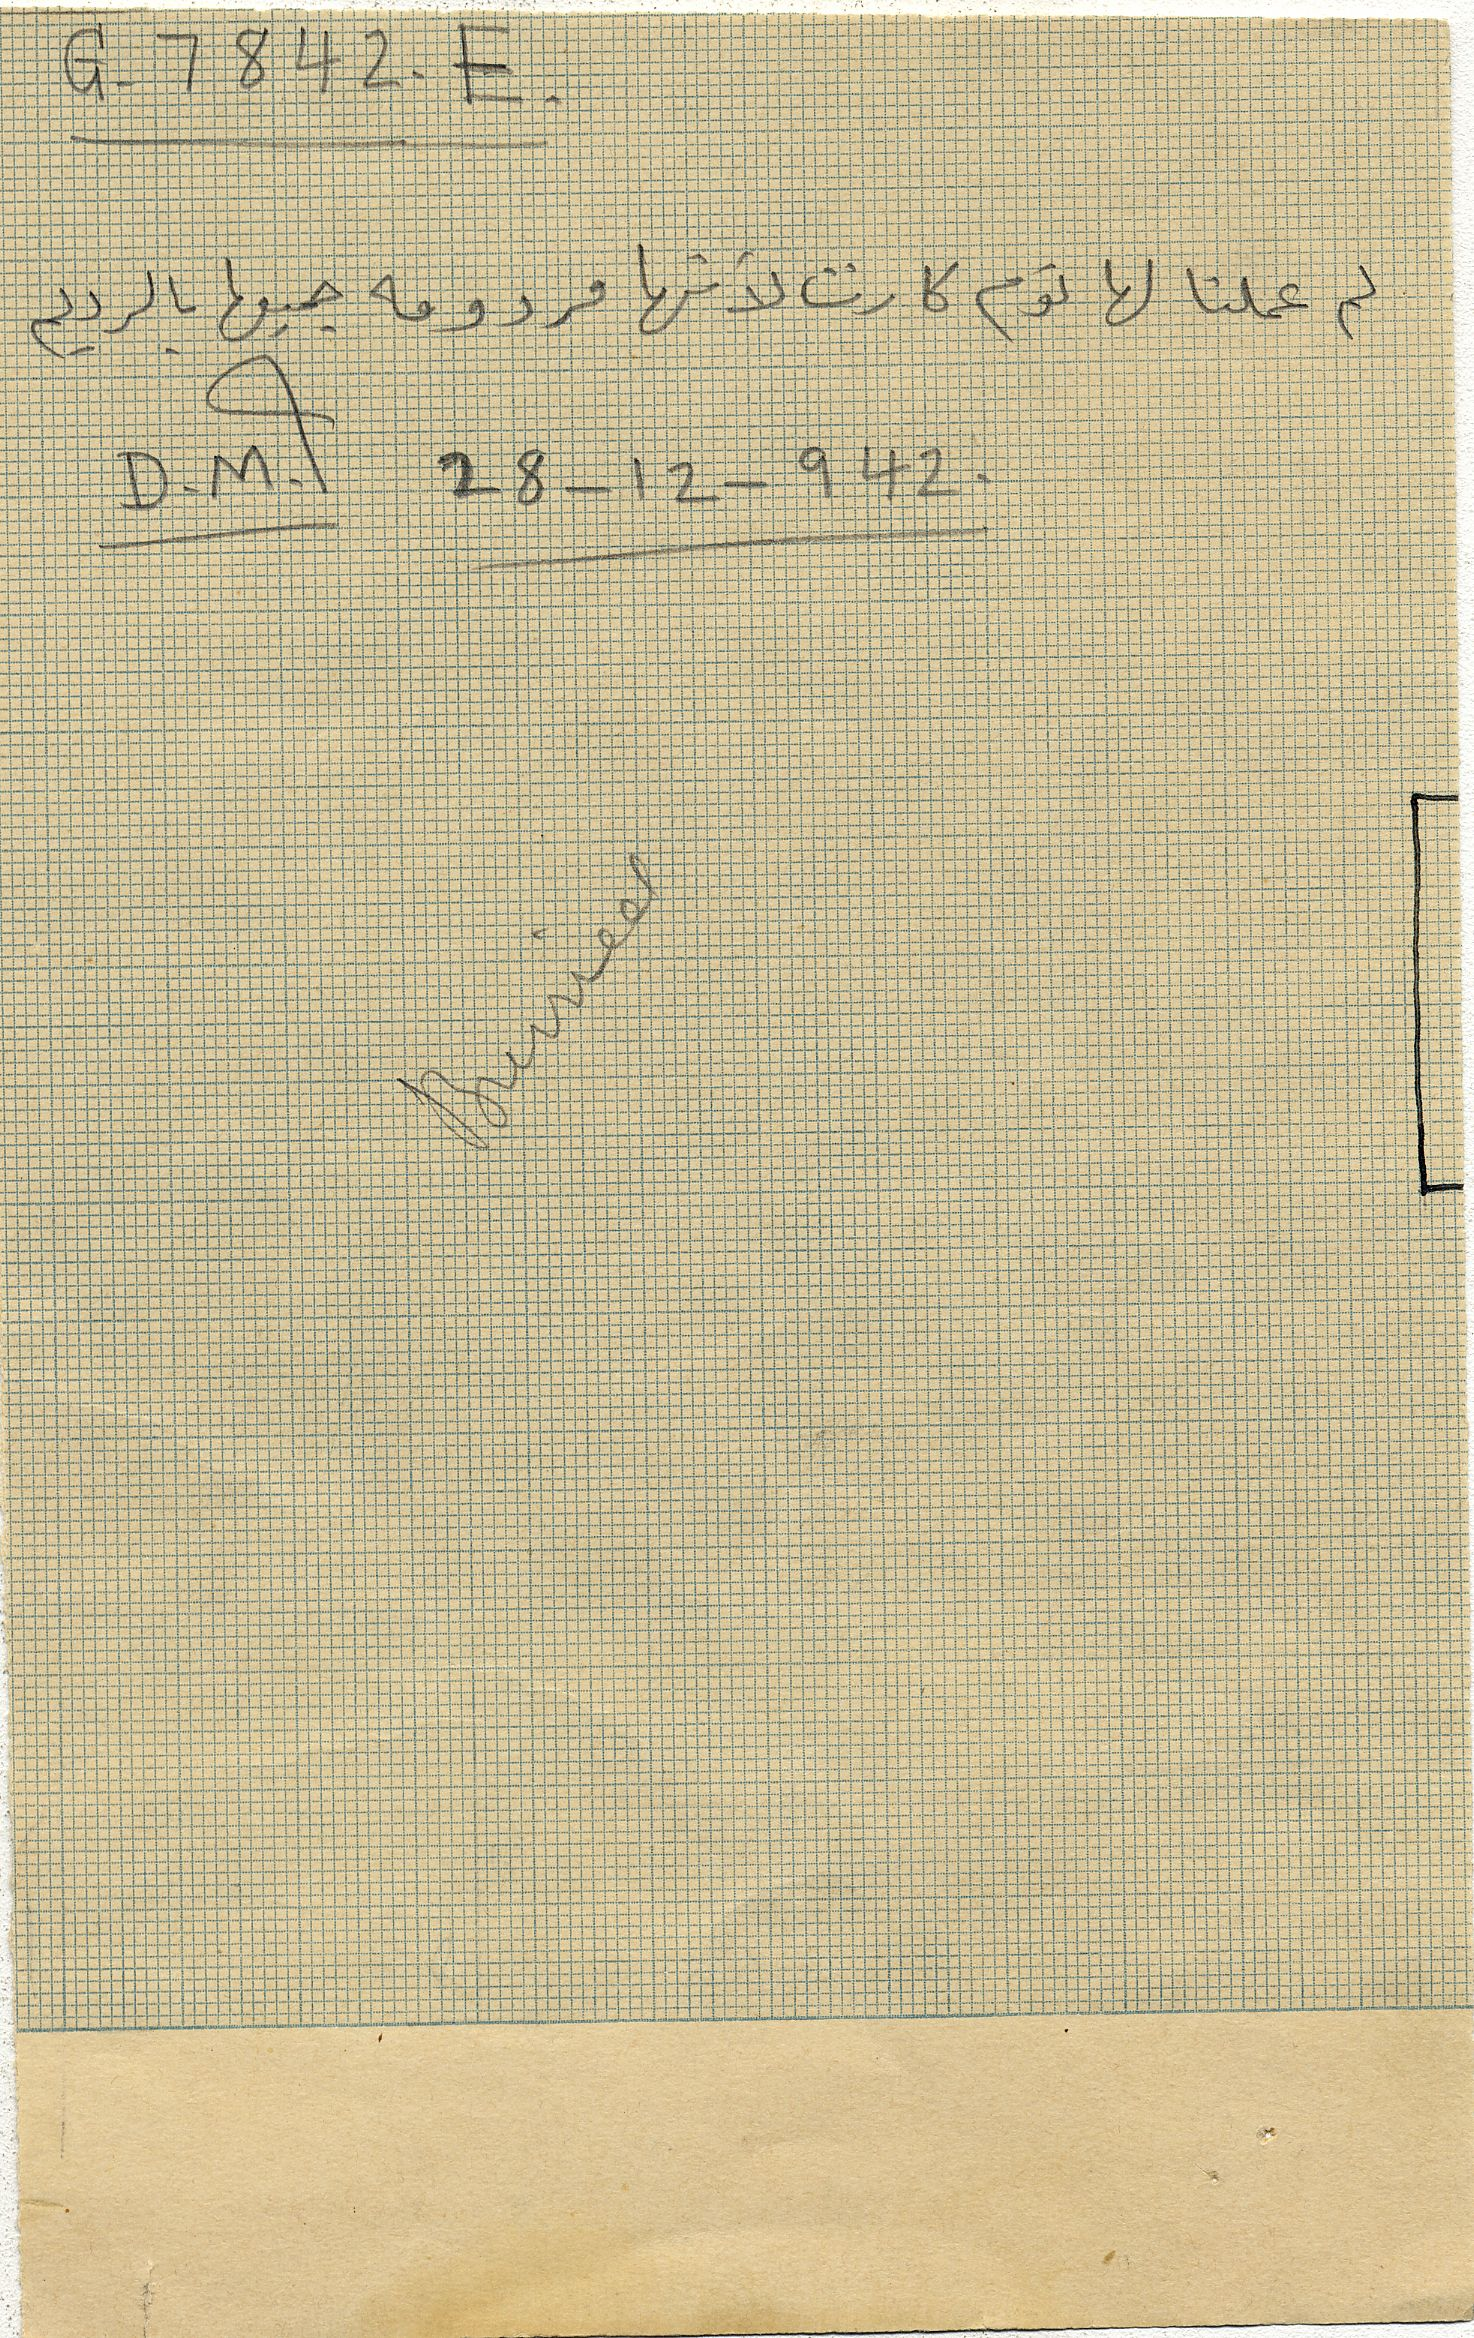 Notes: G 7842, Shaft E, notes (in Arabic)